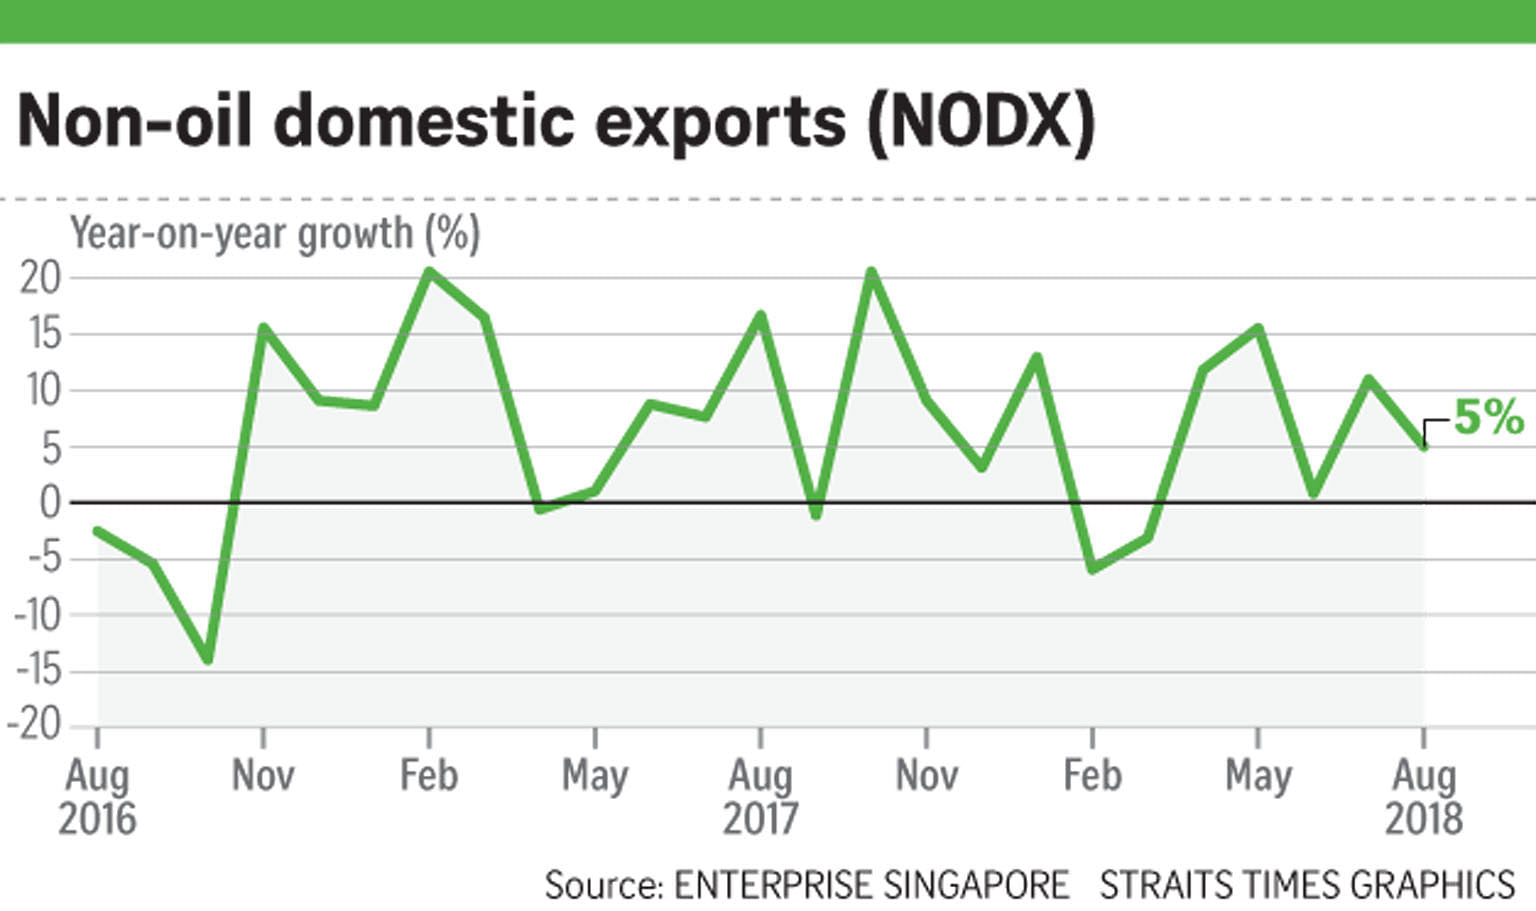 Non-oil exports growth eases to 5% in August, Business News